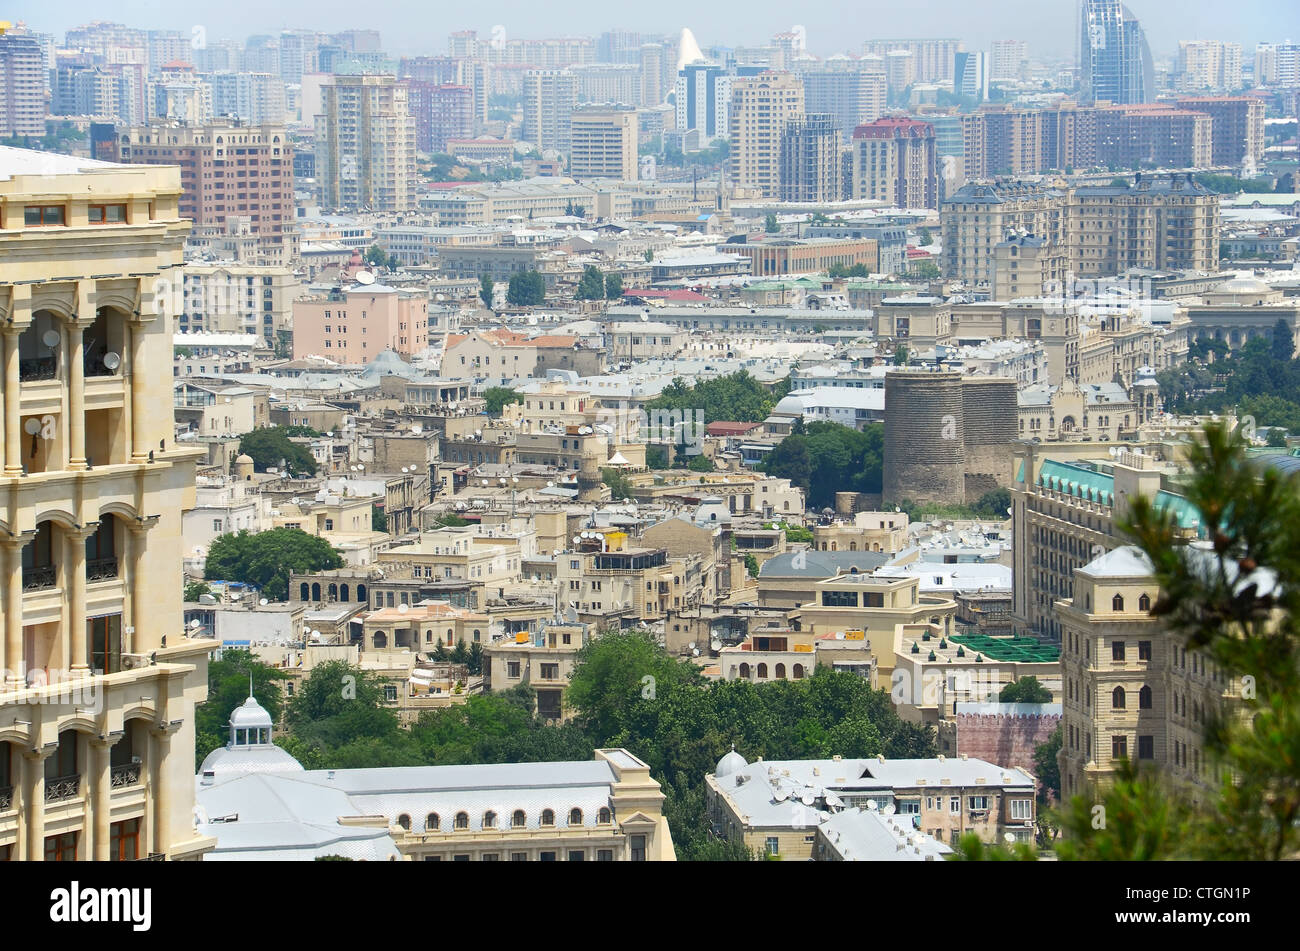 View of Baku city - capital of Azerbaijan - Stock Image